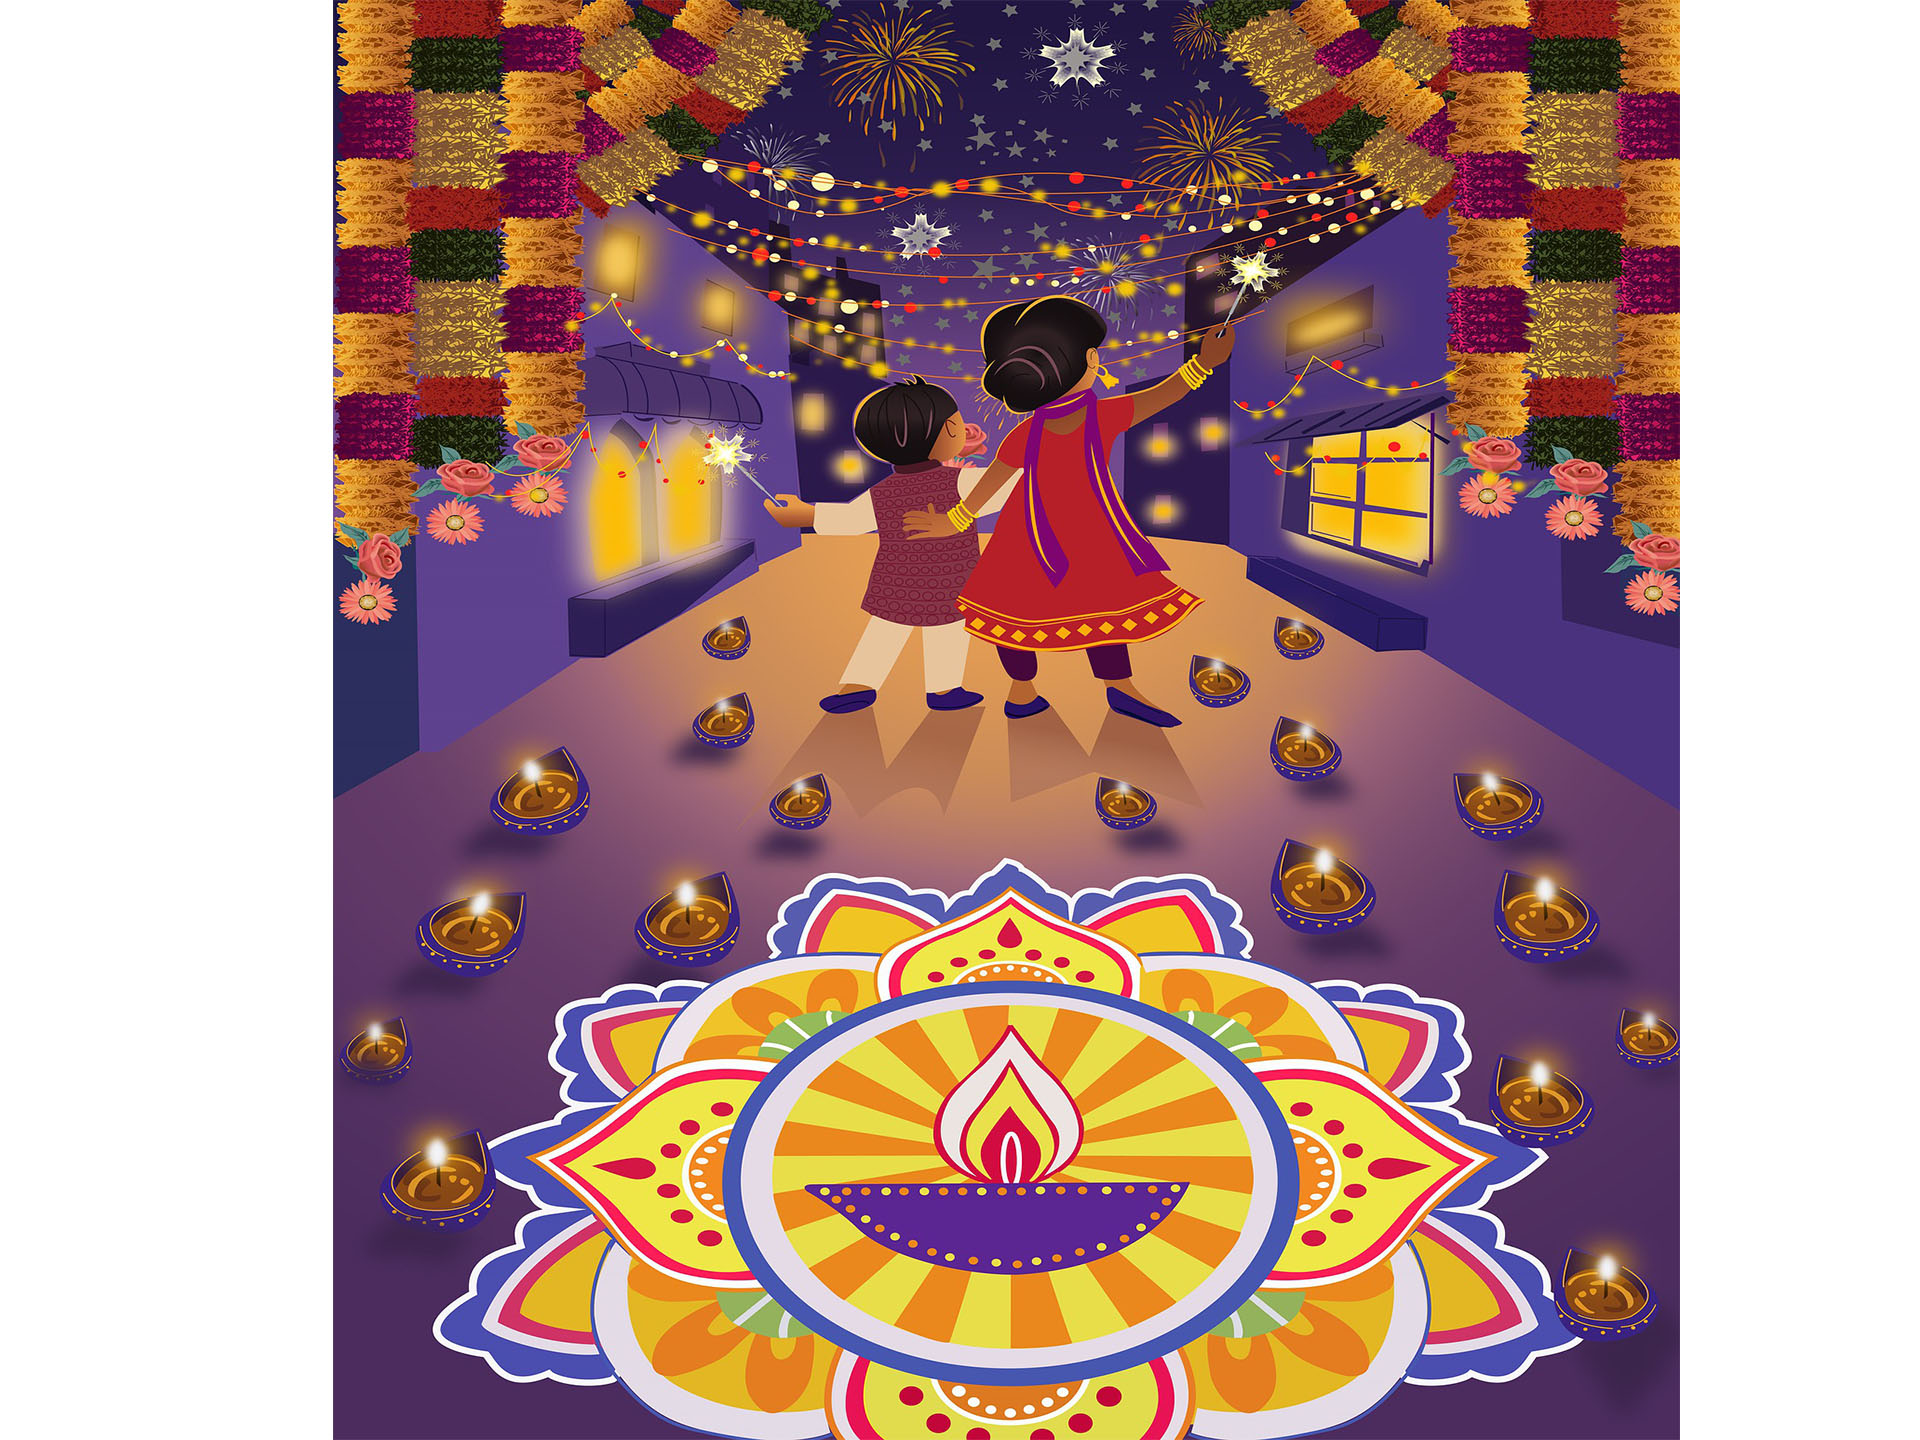 Diwali Gift Ideas to Shine Light & Happiness This Festive Season